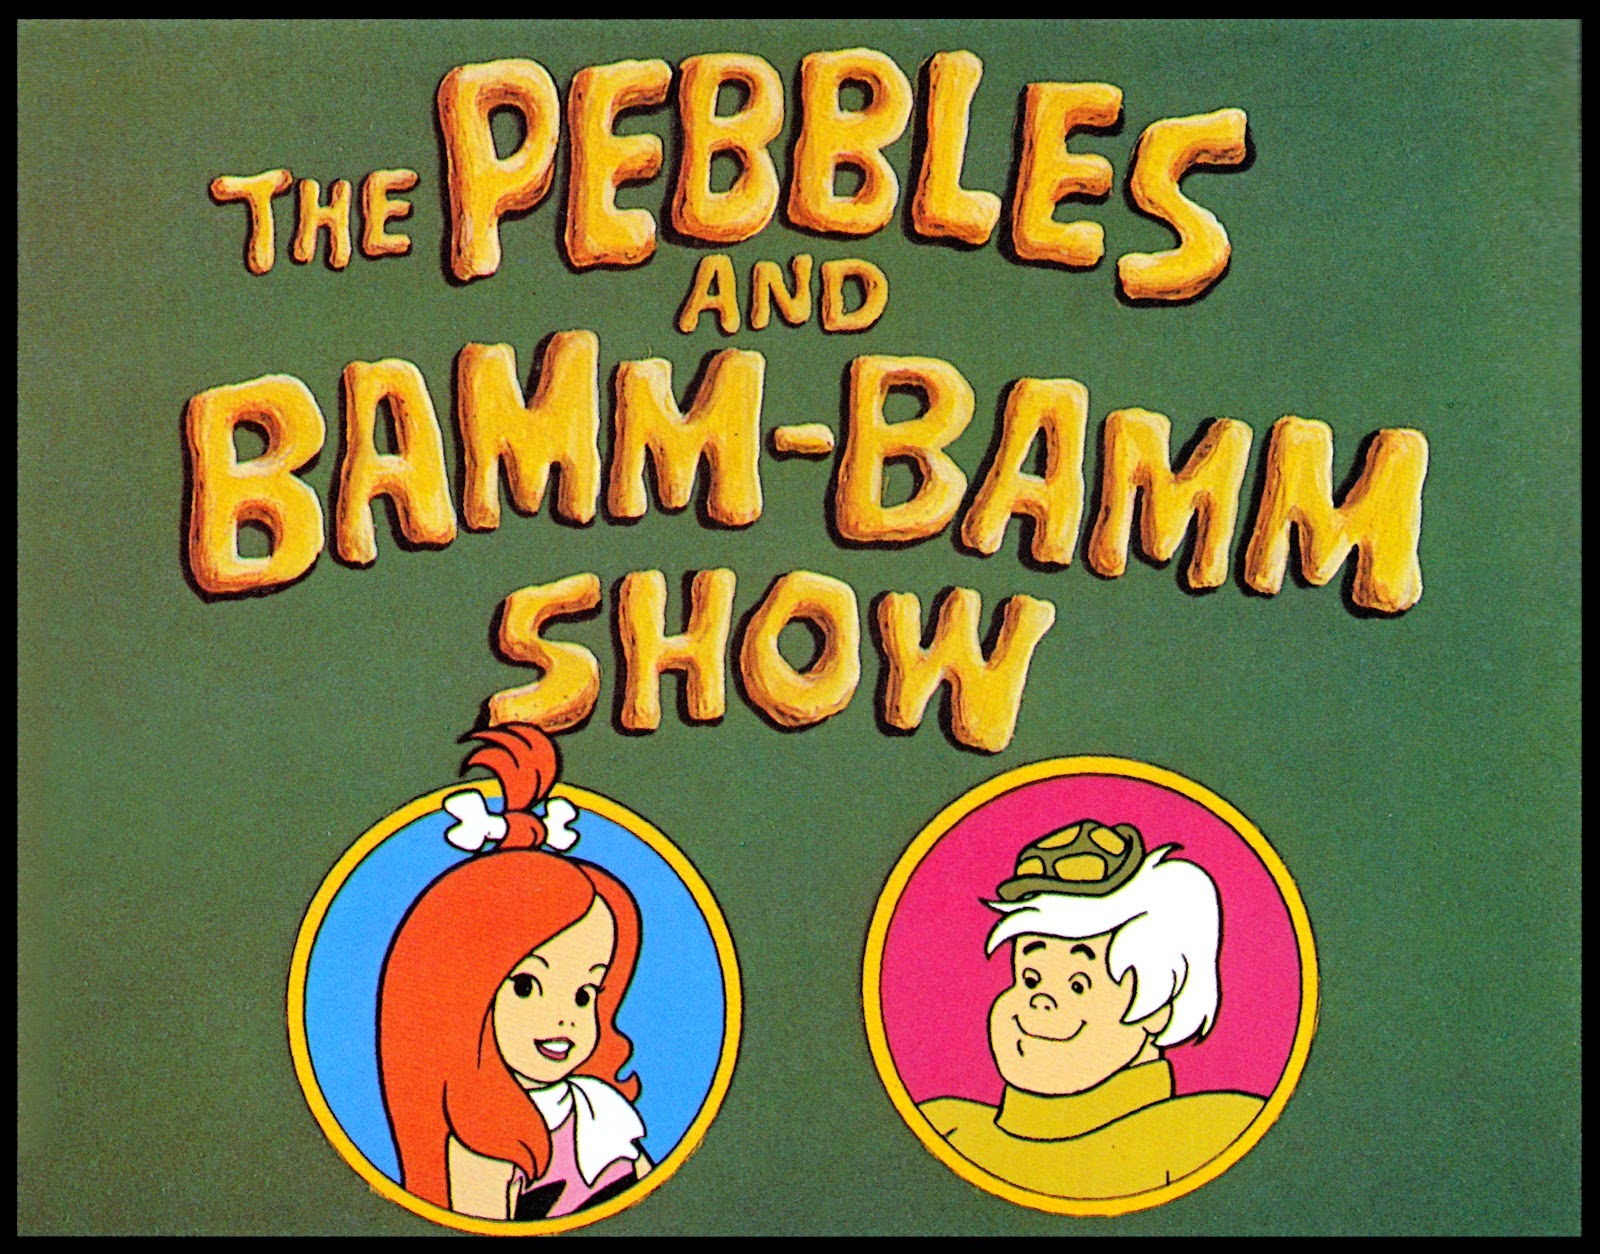 http://saturdaymorningsforever.blogspot.com/2014/11/the-pebbles-and-bamm-bamm-show.html